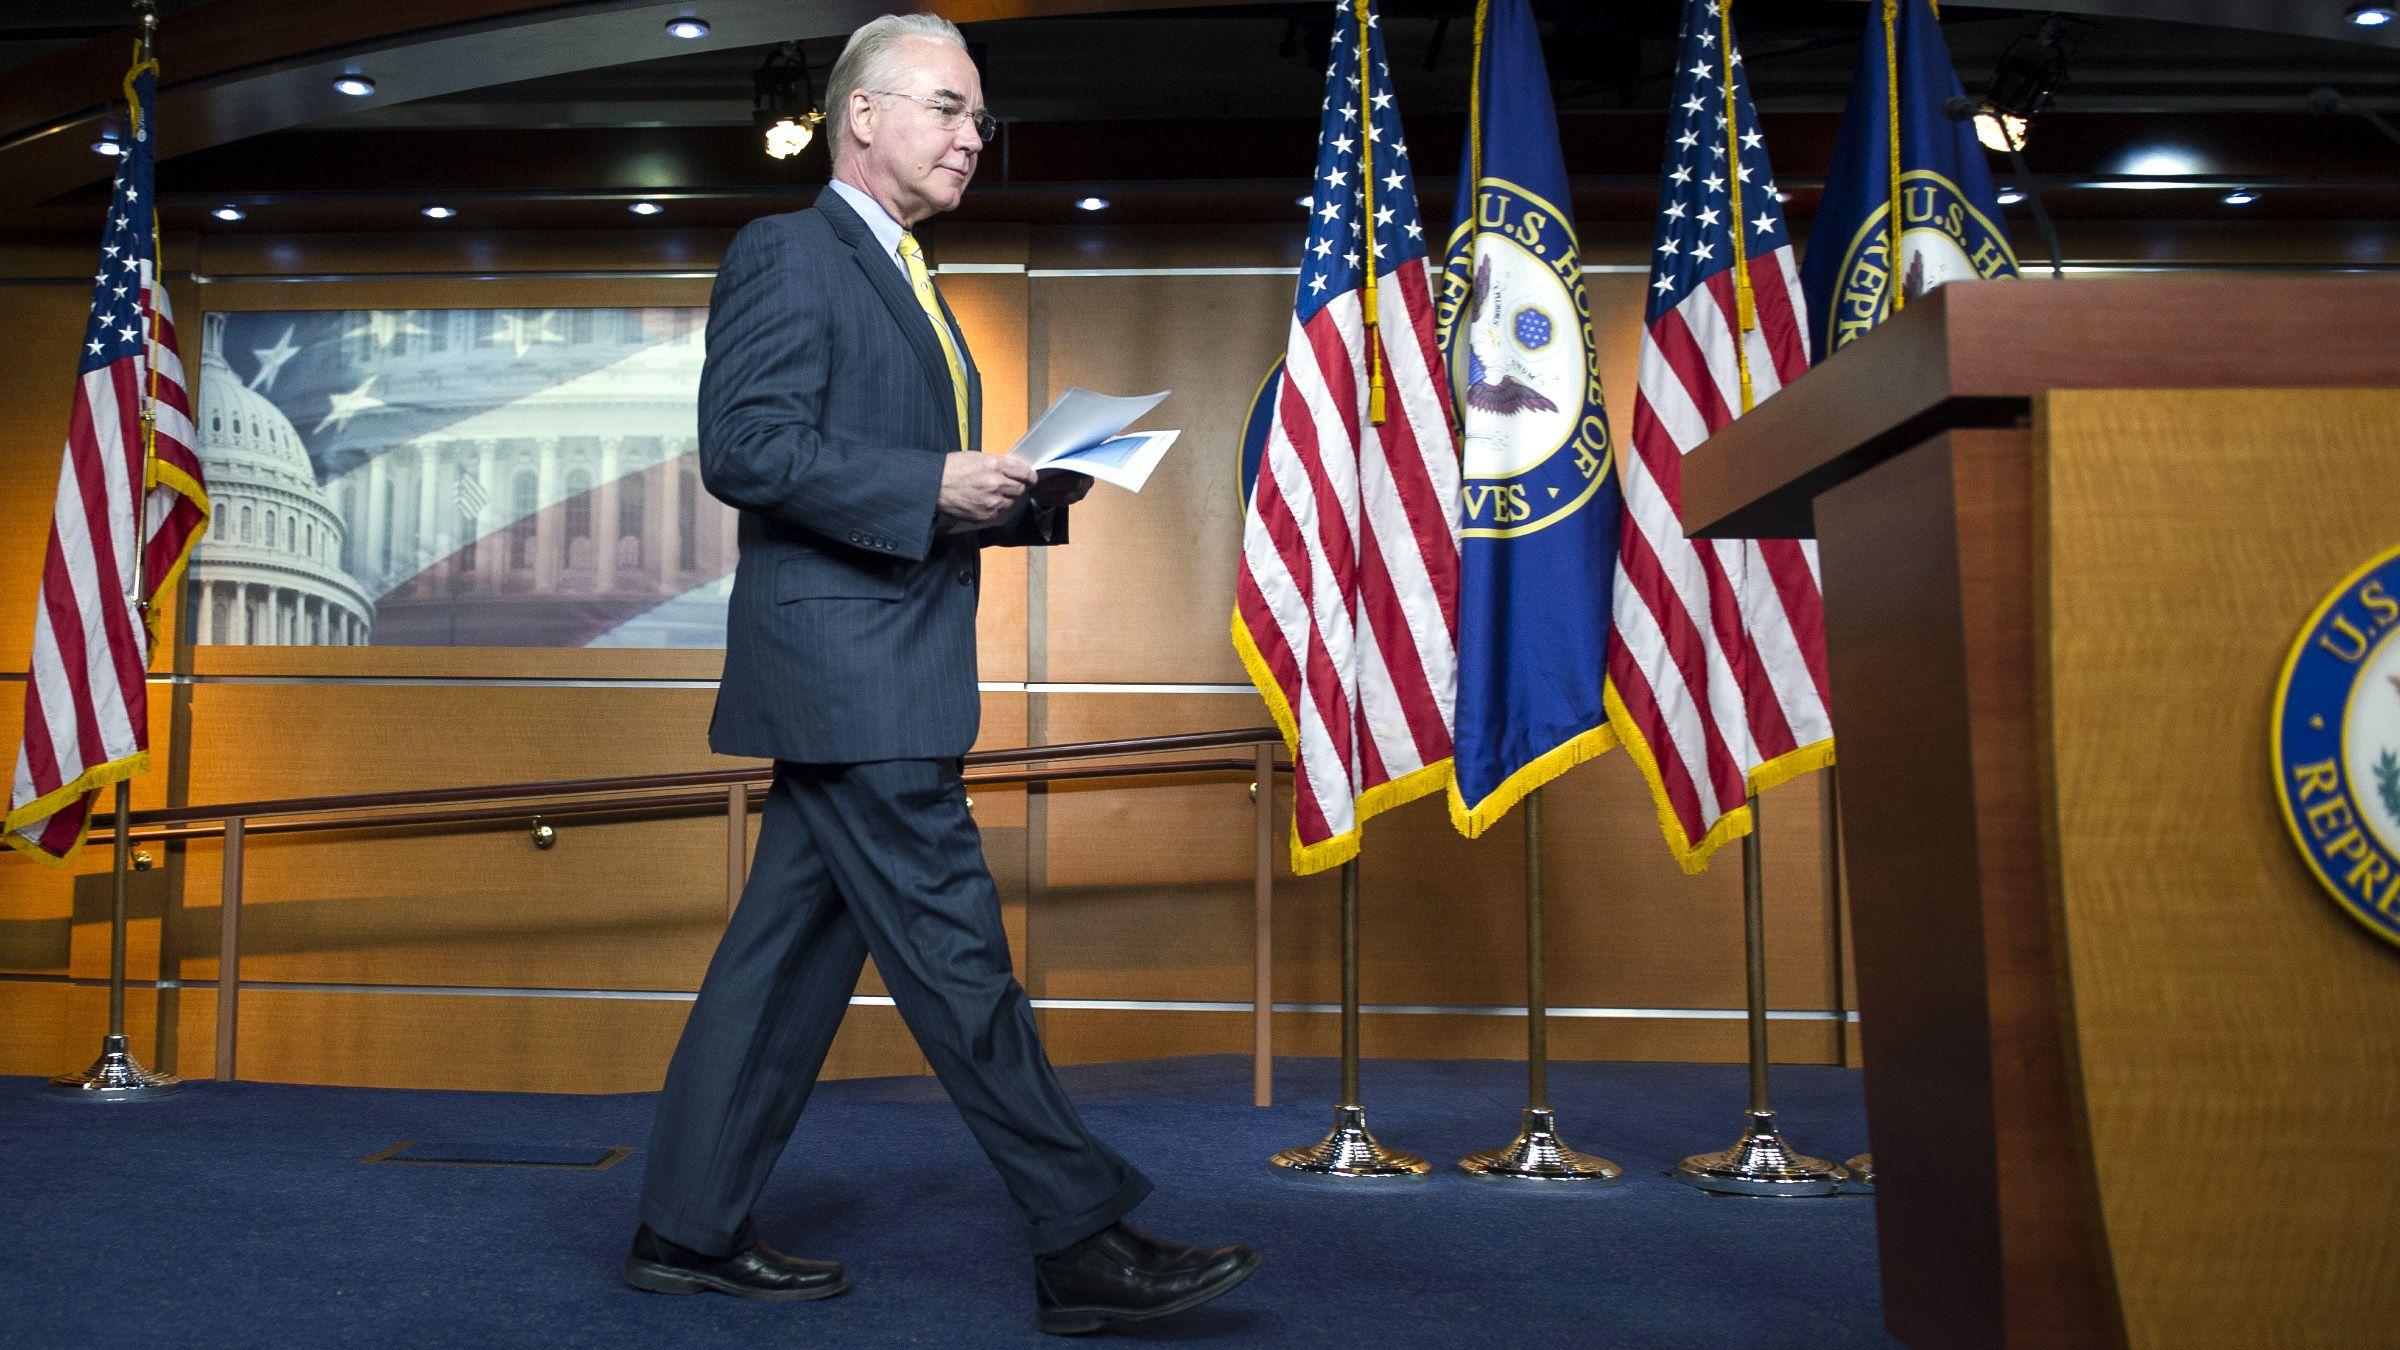 House Budget Committee Chairman Rep. Tom Price, R-Ga., walks to a podium to announce the House Republican budget proposal, Tuesday, March 17, 2015, on Capitol Hill in Washington. The plan includes a boost in defense spending but cuts in the Medicaid program for the poor, food stamps and health care subsidies.